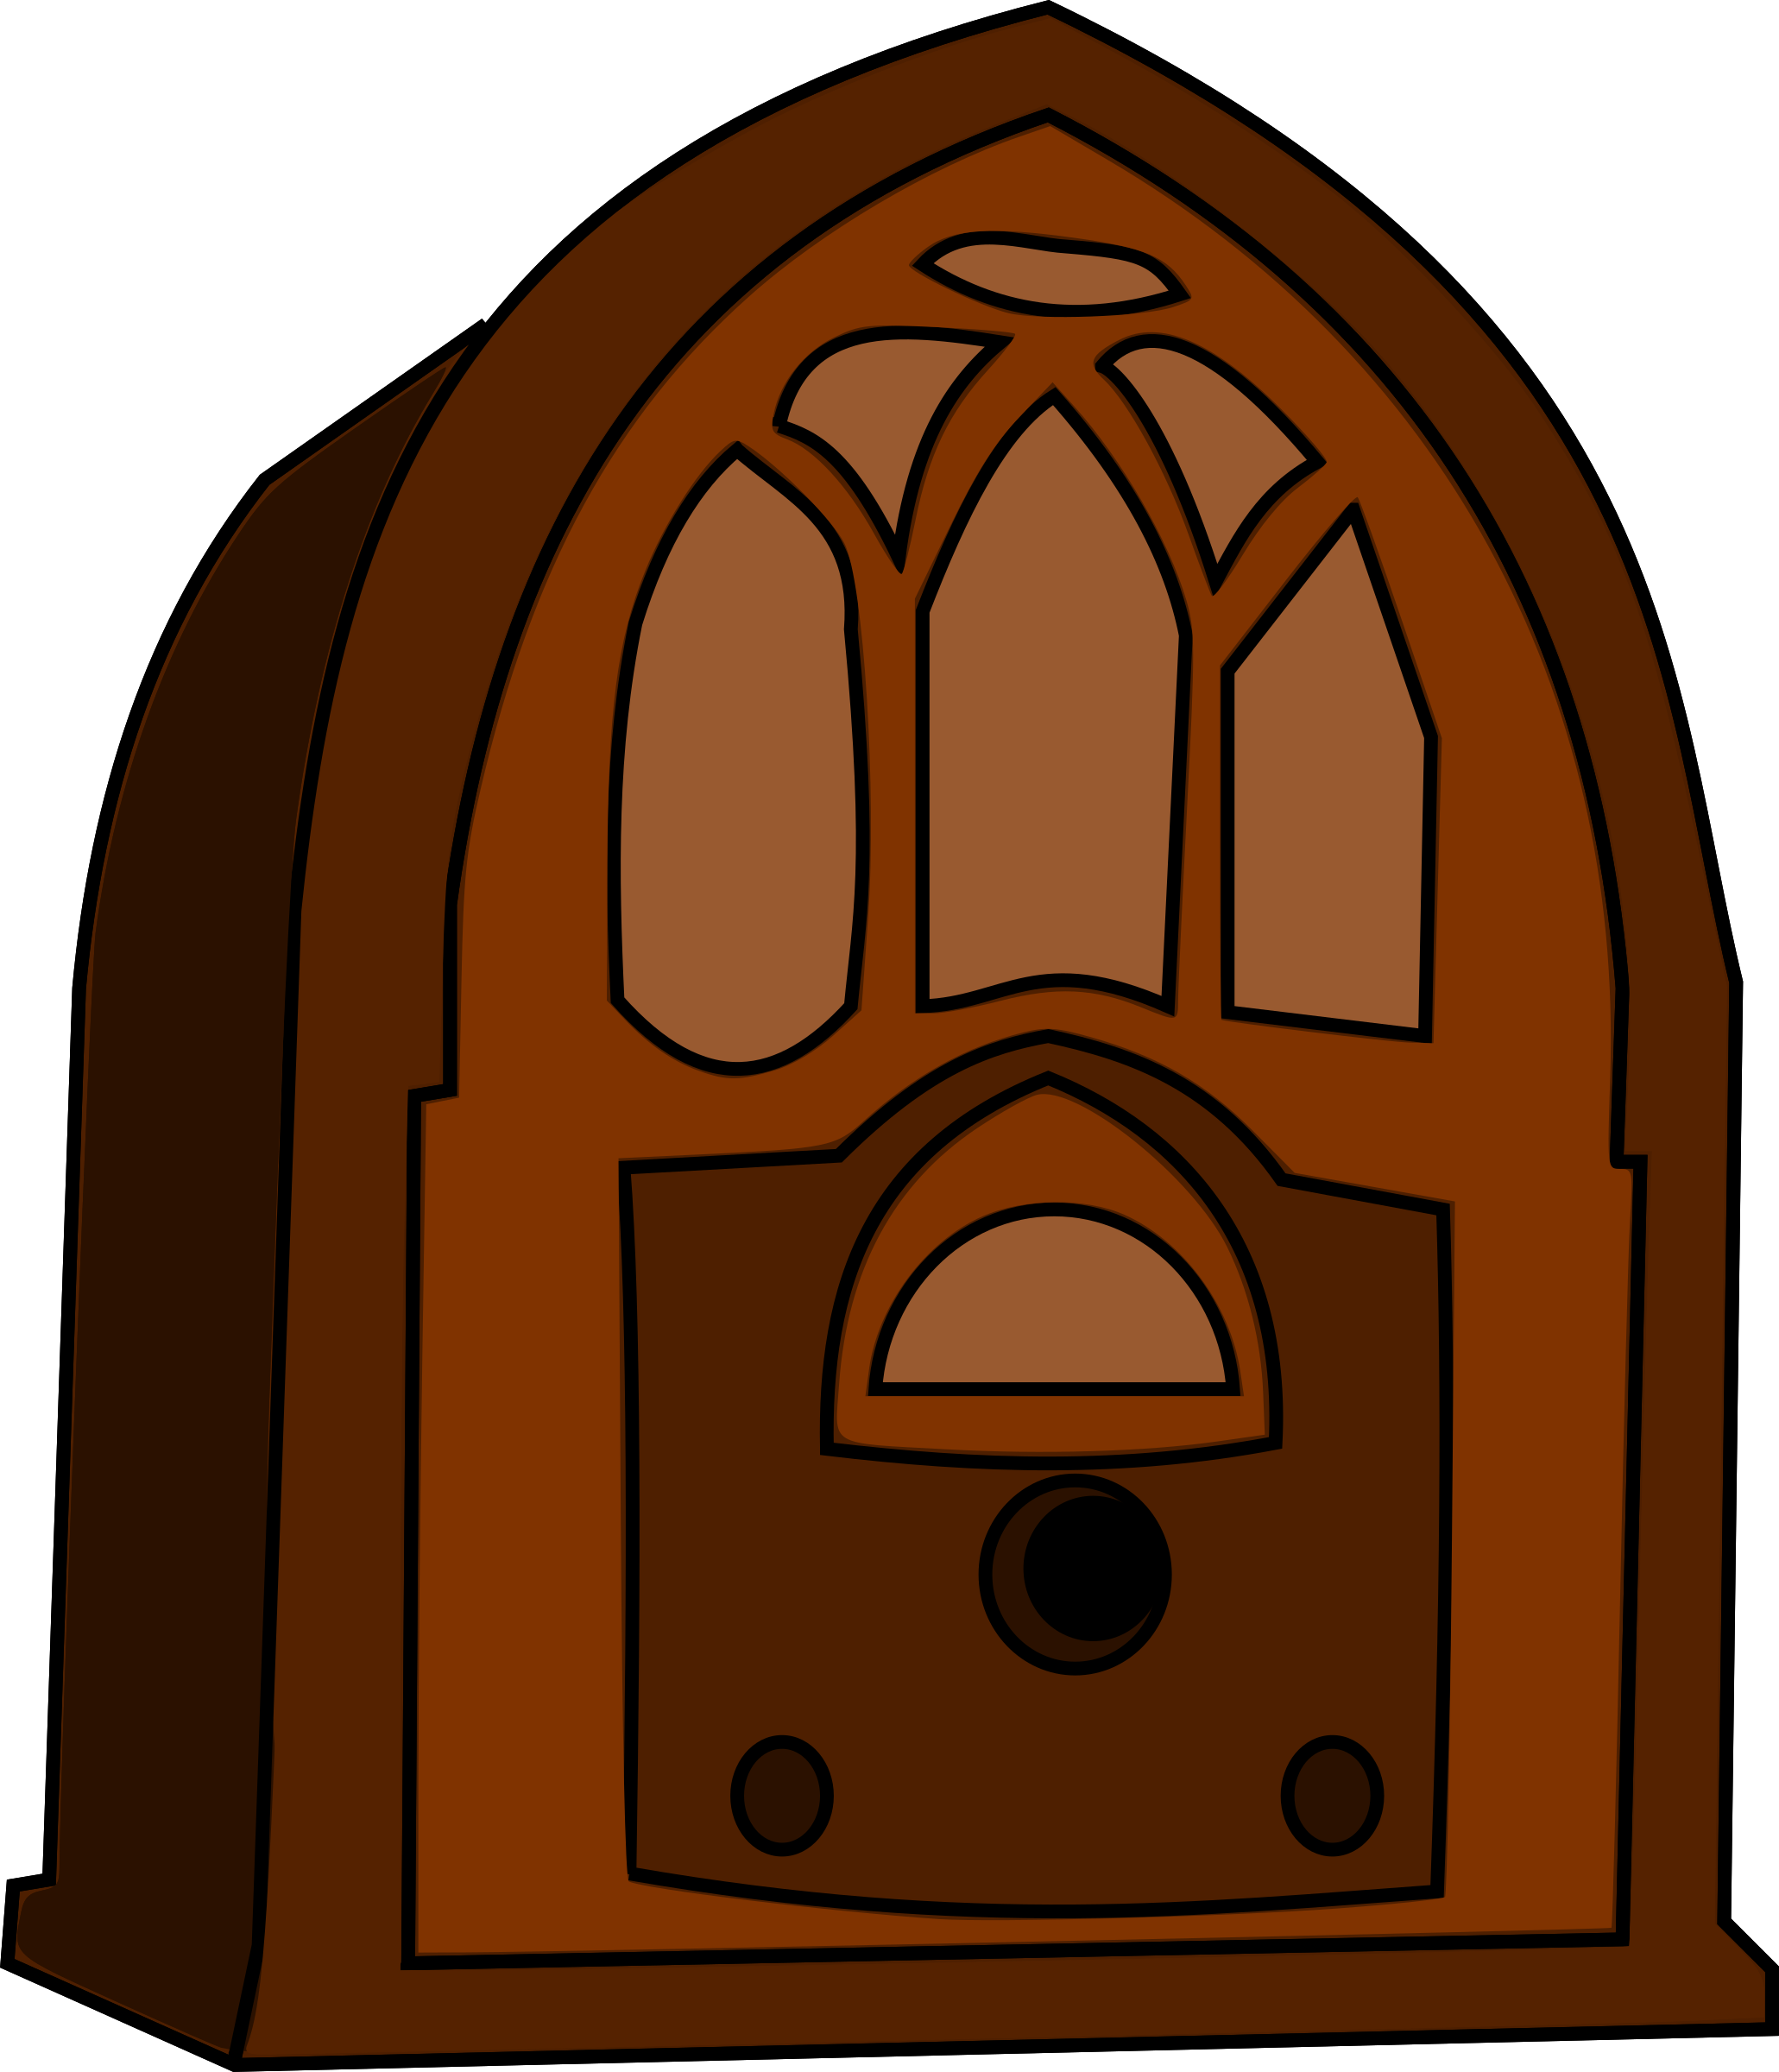 Old Time Radio Icon